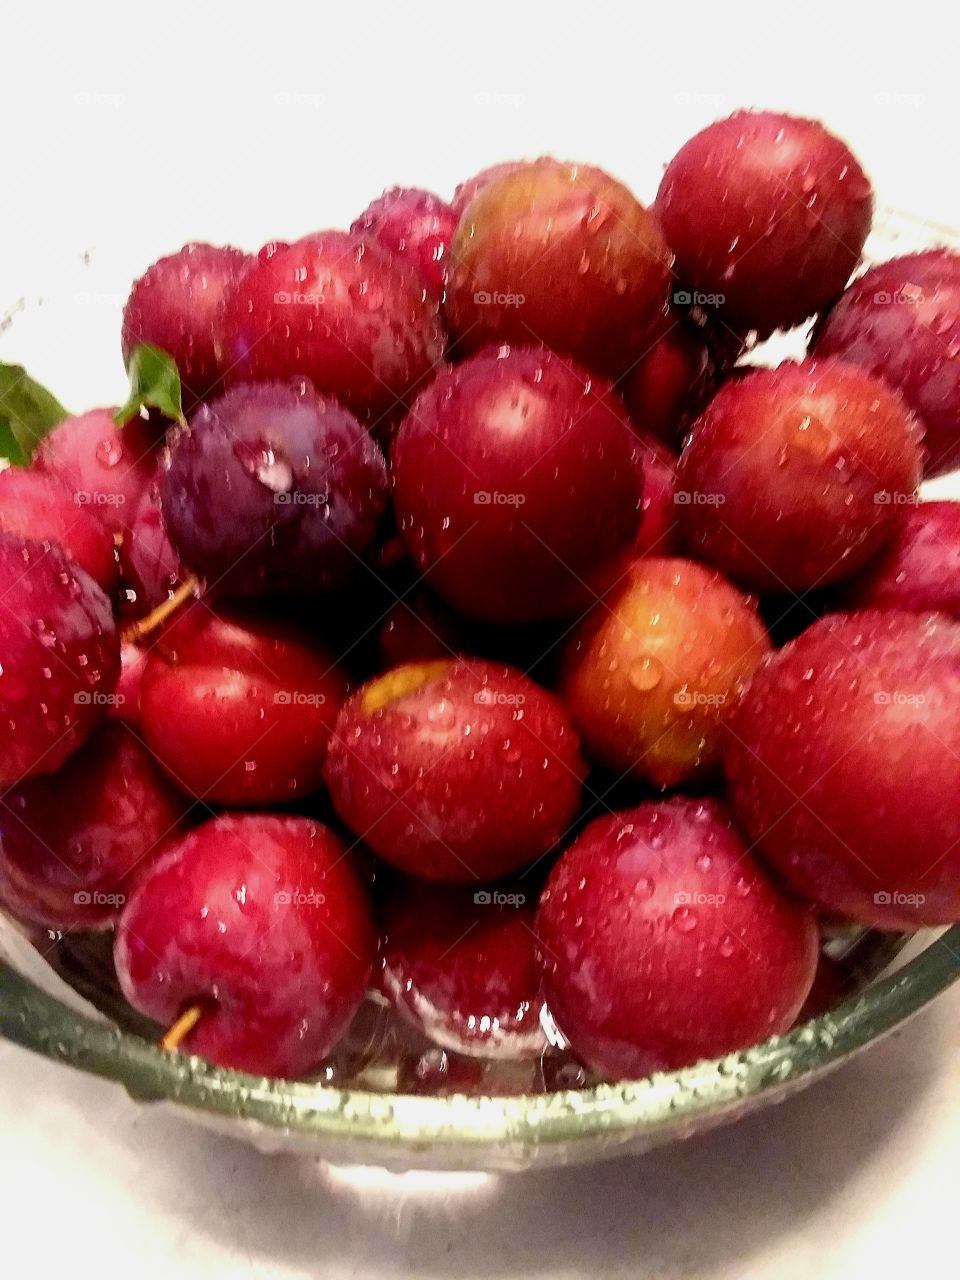 the squirrels didnt eat the plums before I could get them.  YEA!